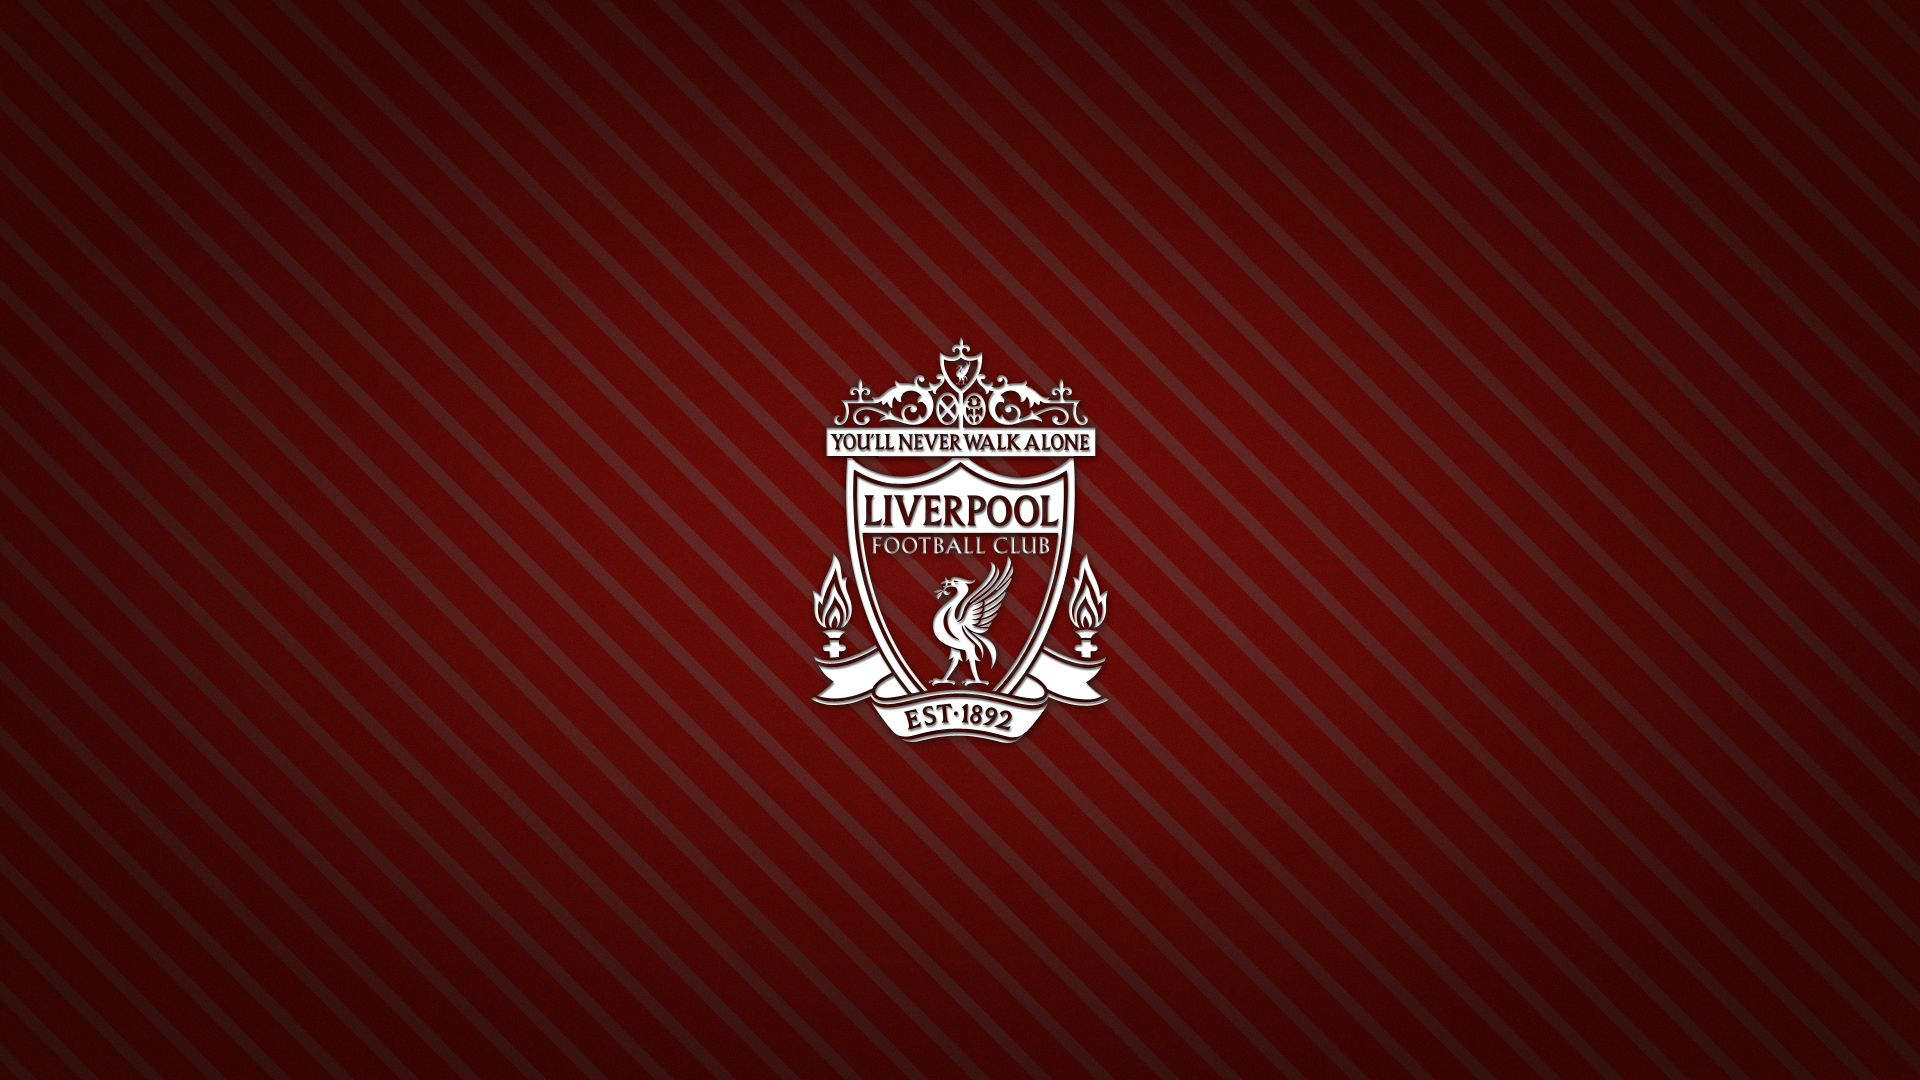 Liverpool FC Wallpaper and Theme for Windows 10 All for Windows 10 1920x1080